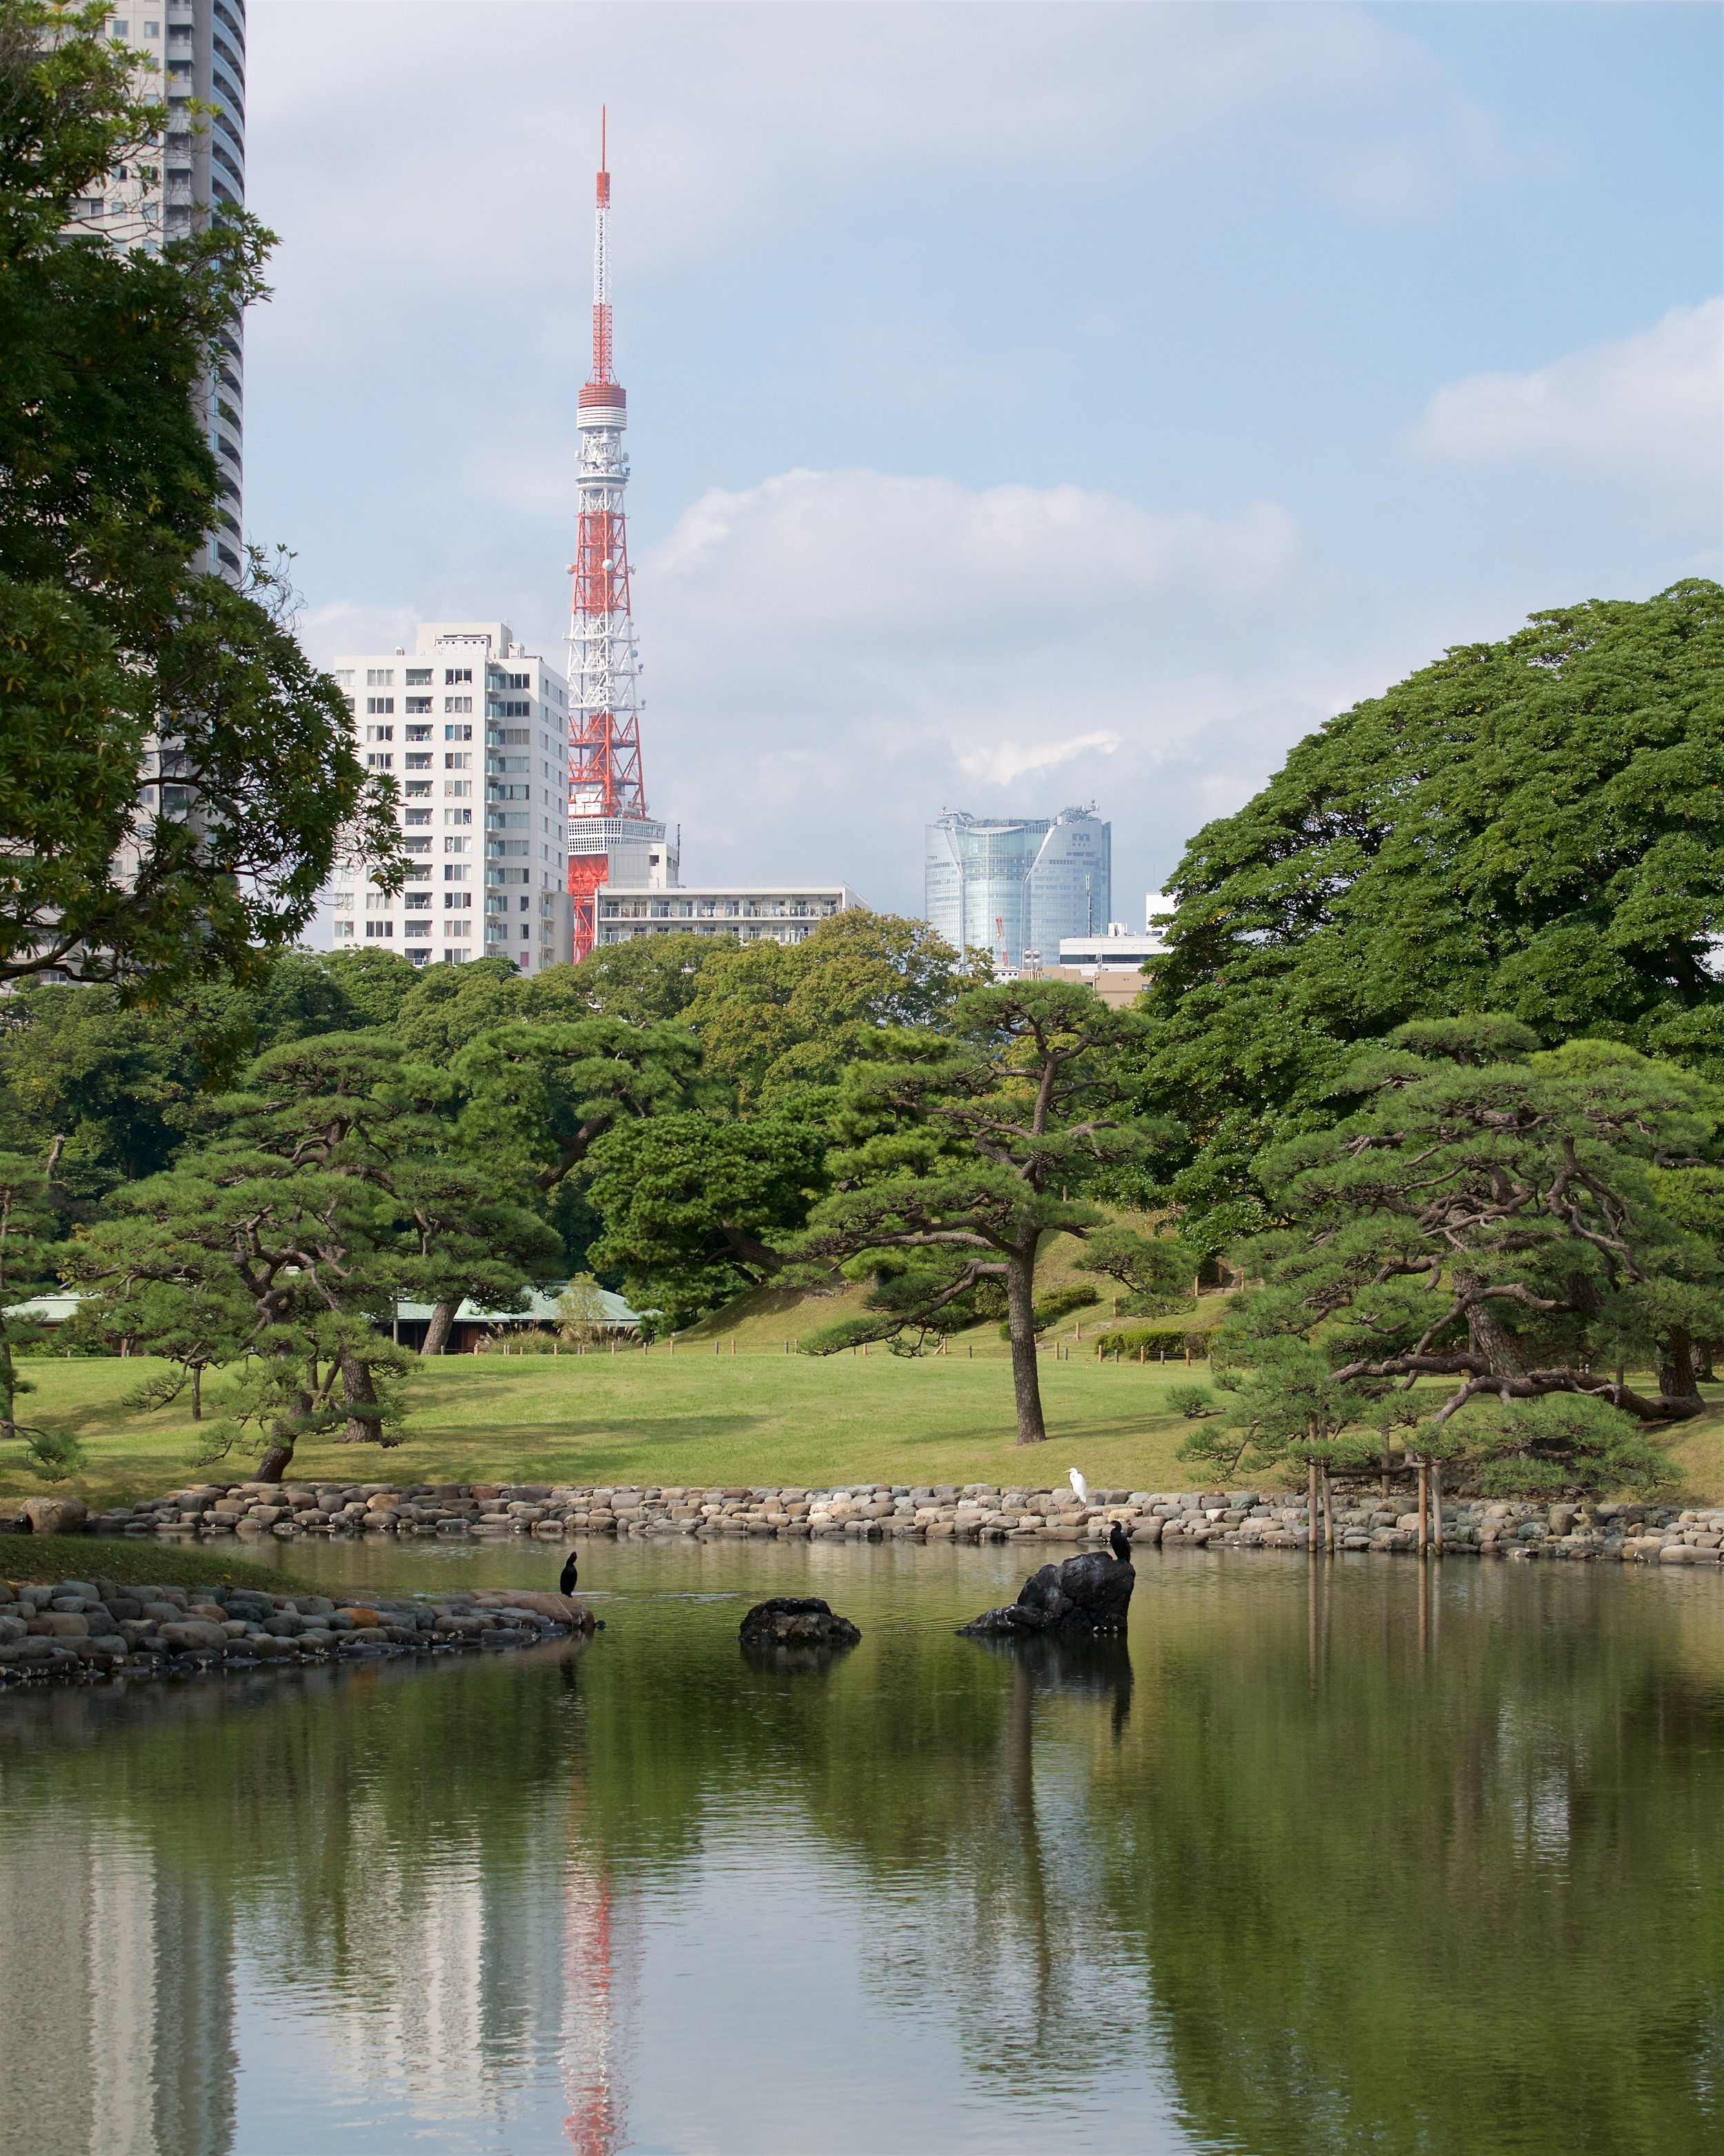 Tokyo Tower in the background